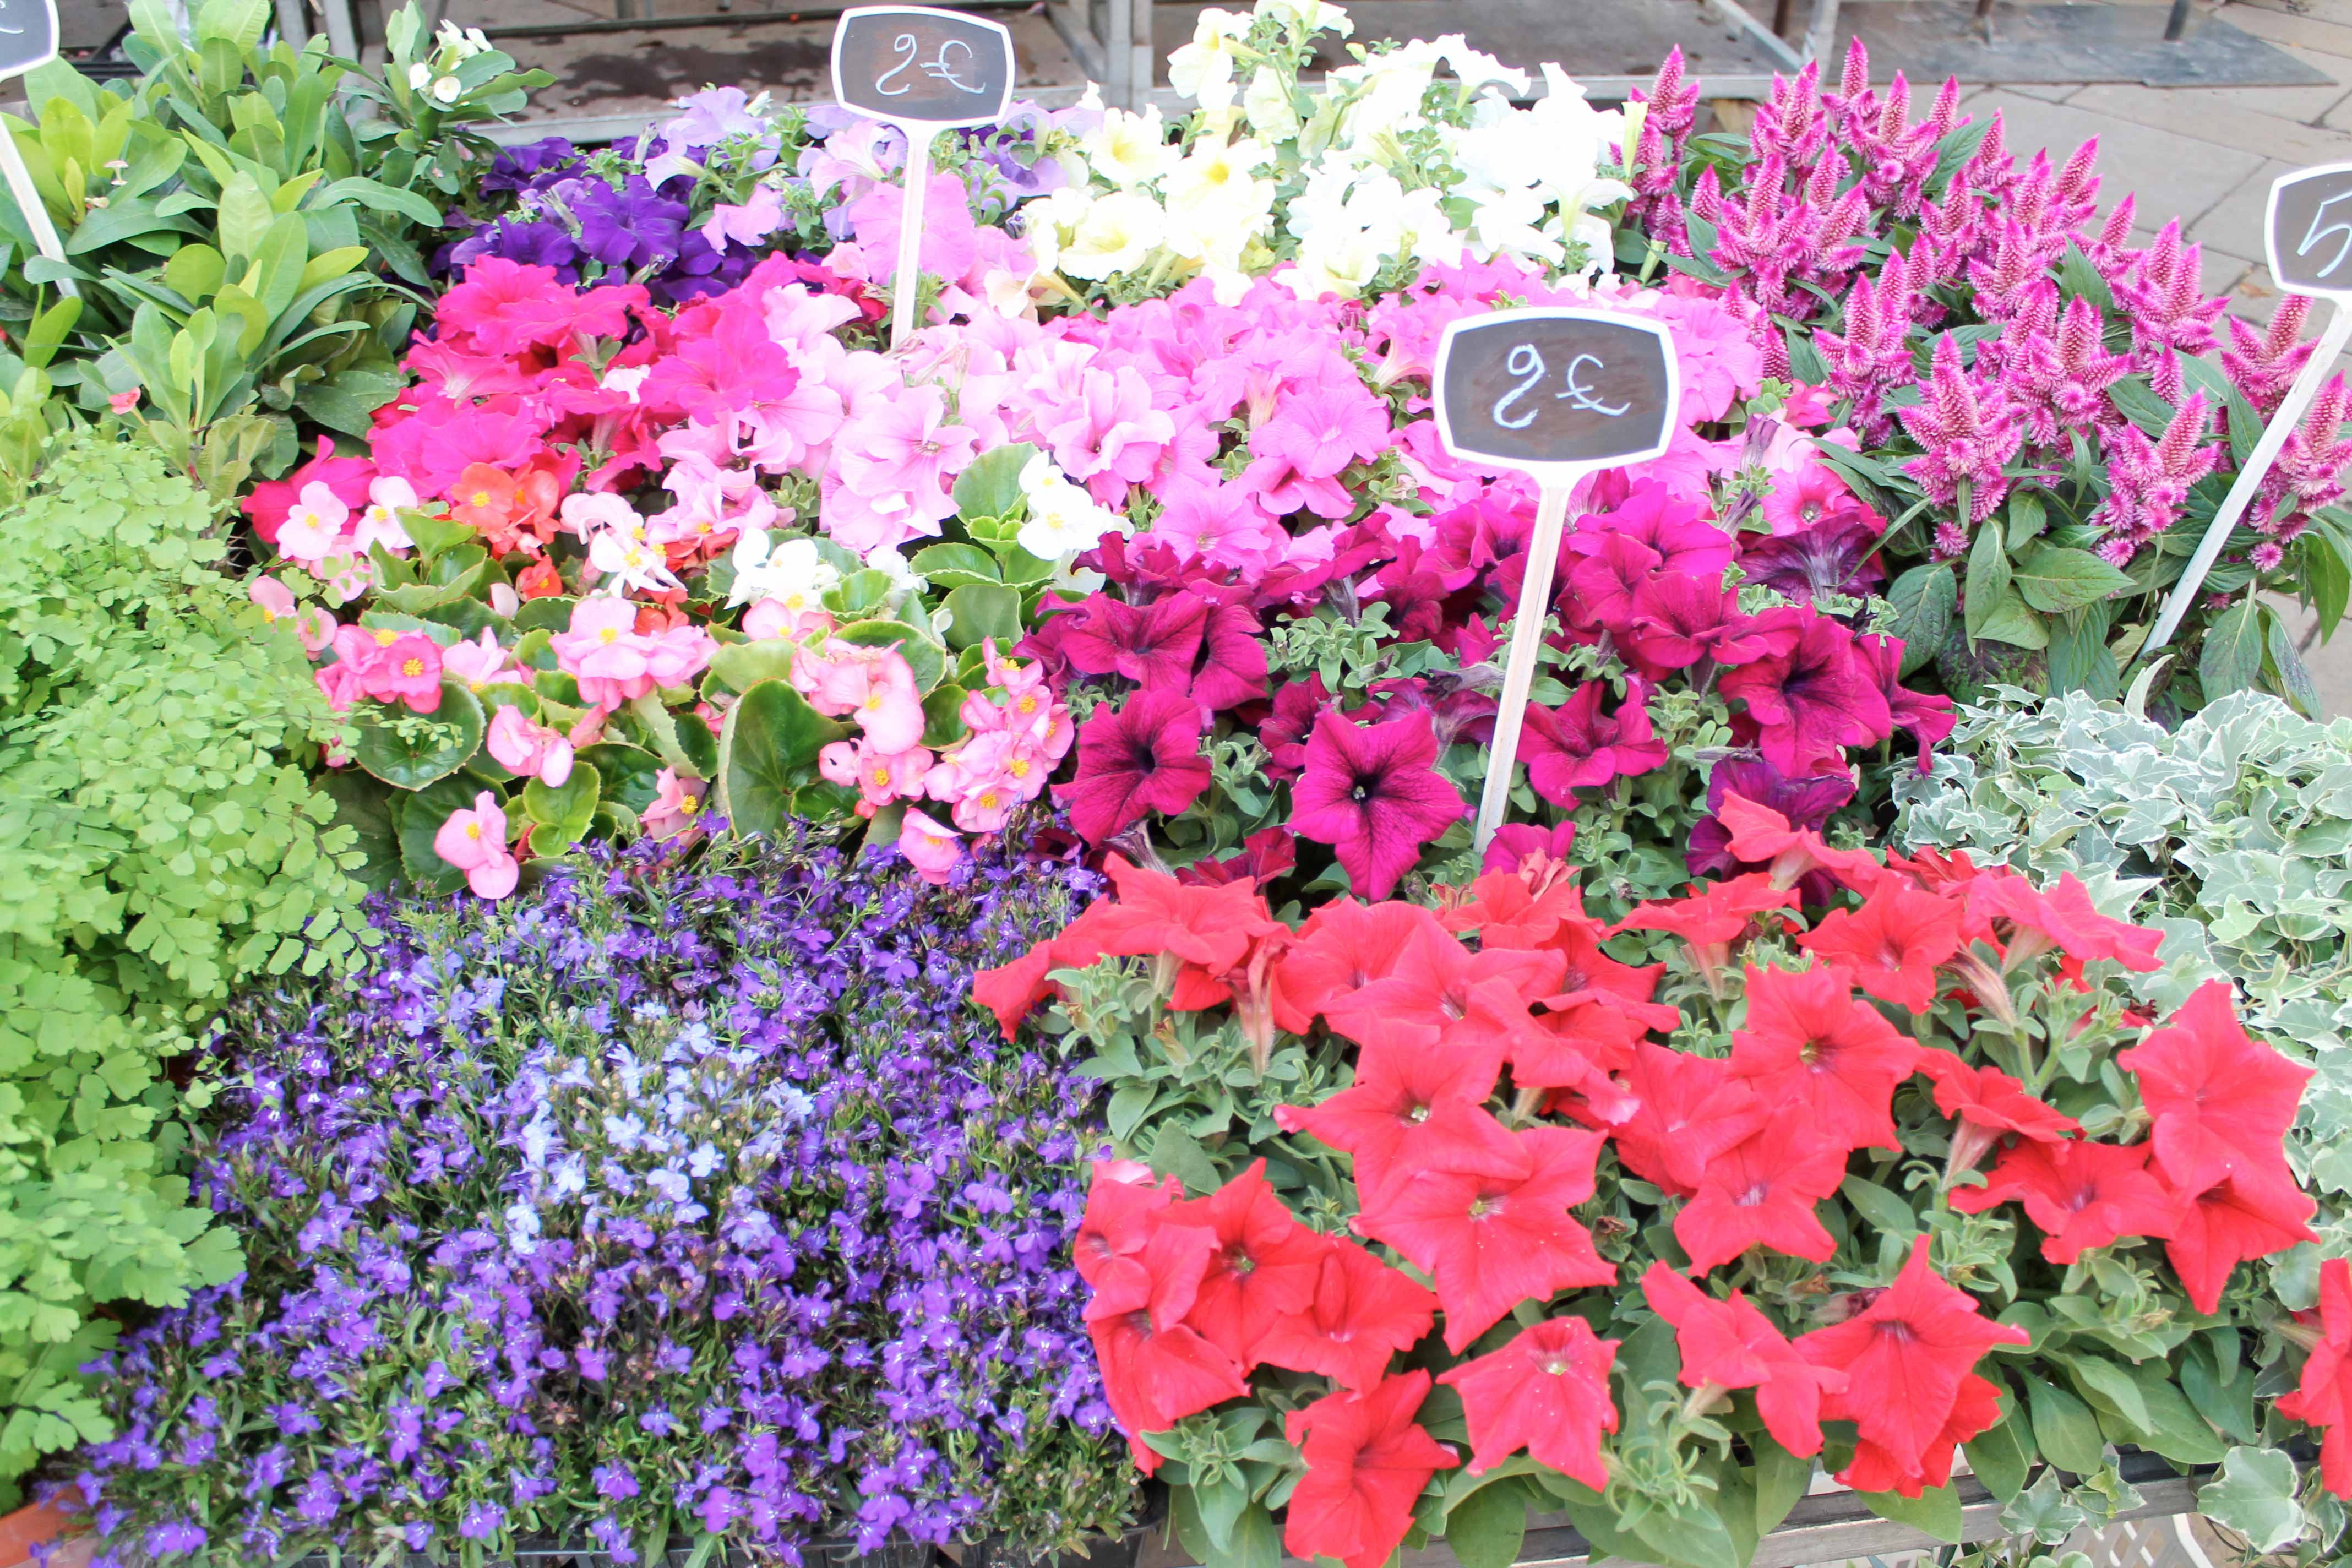 Shore excursion, flower stall, Aix en Provence